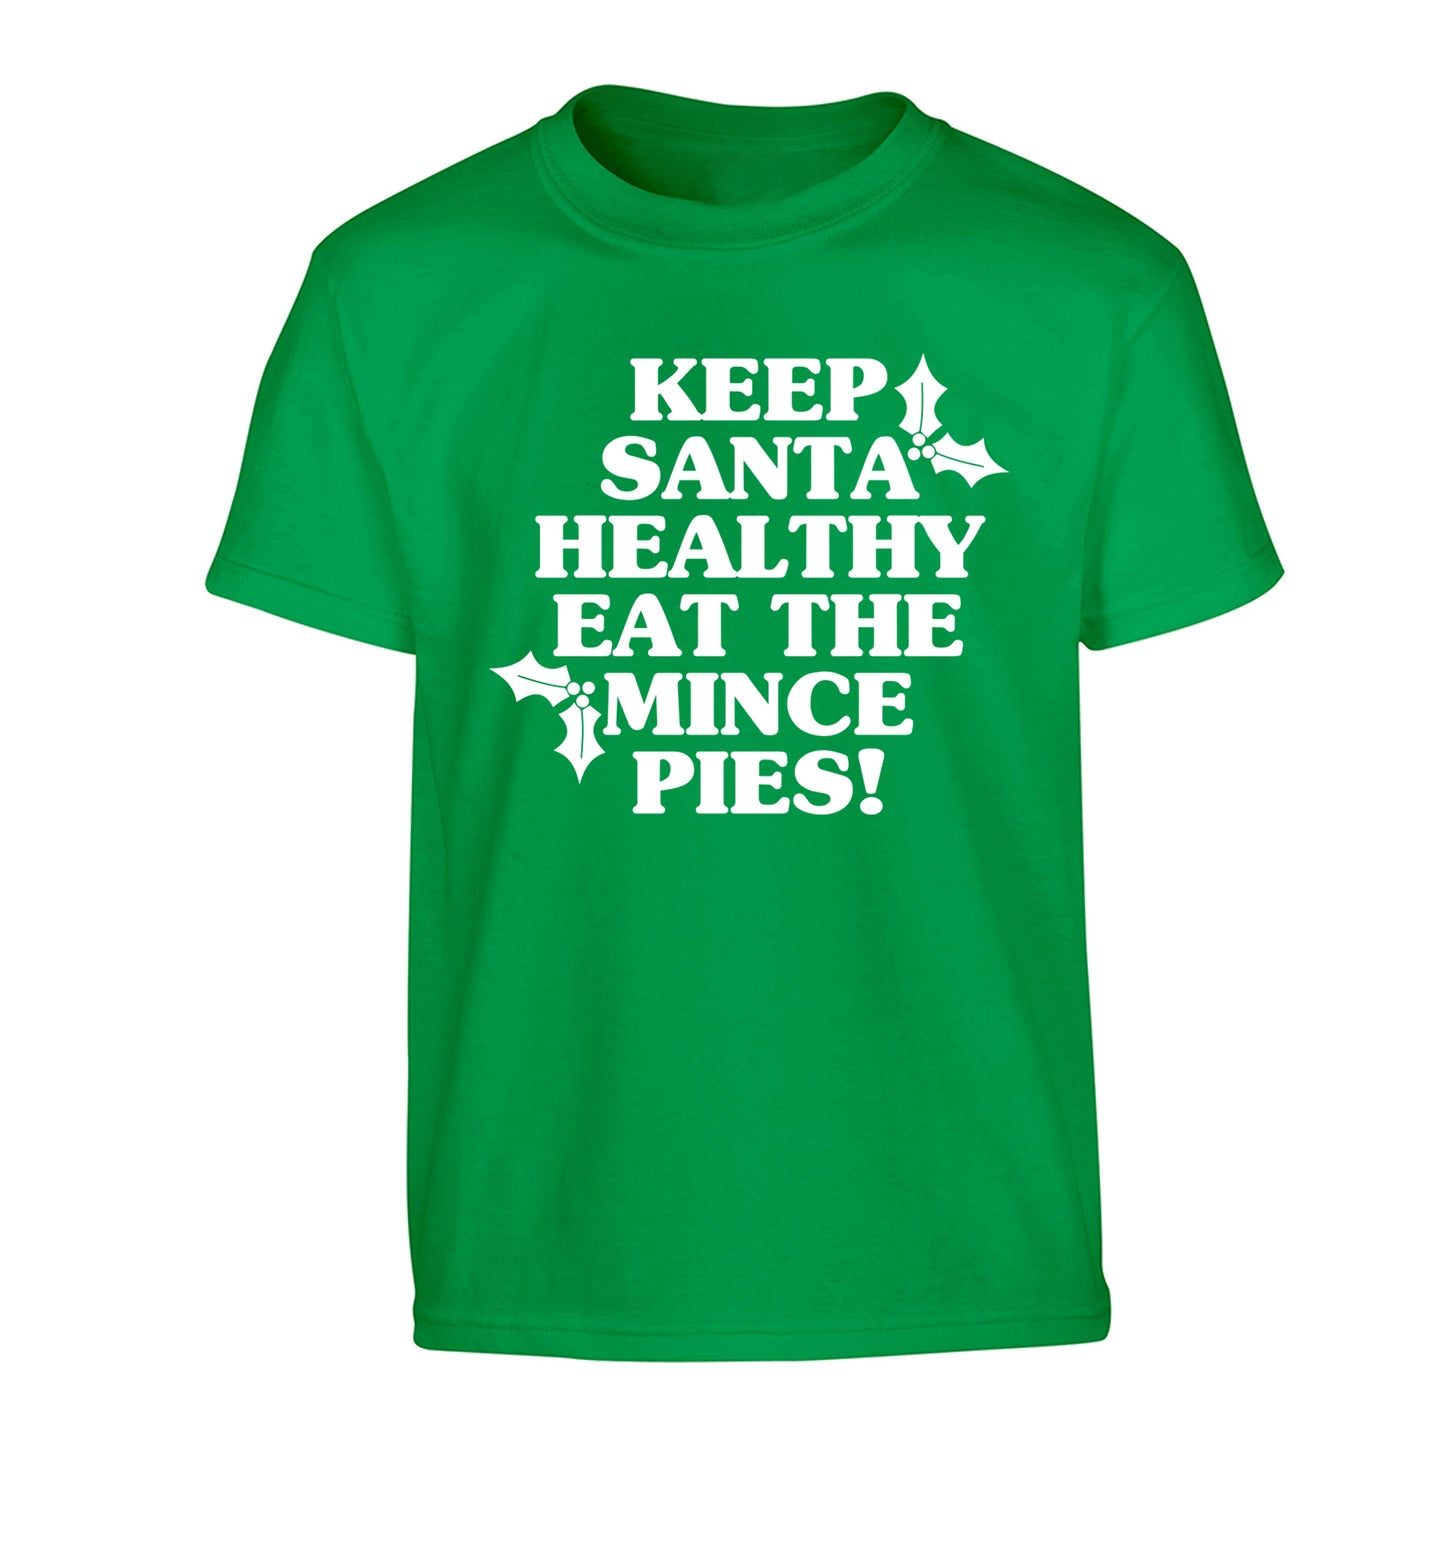 Keep santa healthy eat the mince pies Children's green Tshirt 12-14 Years